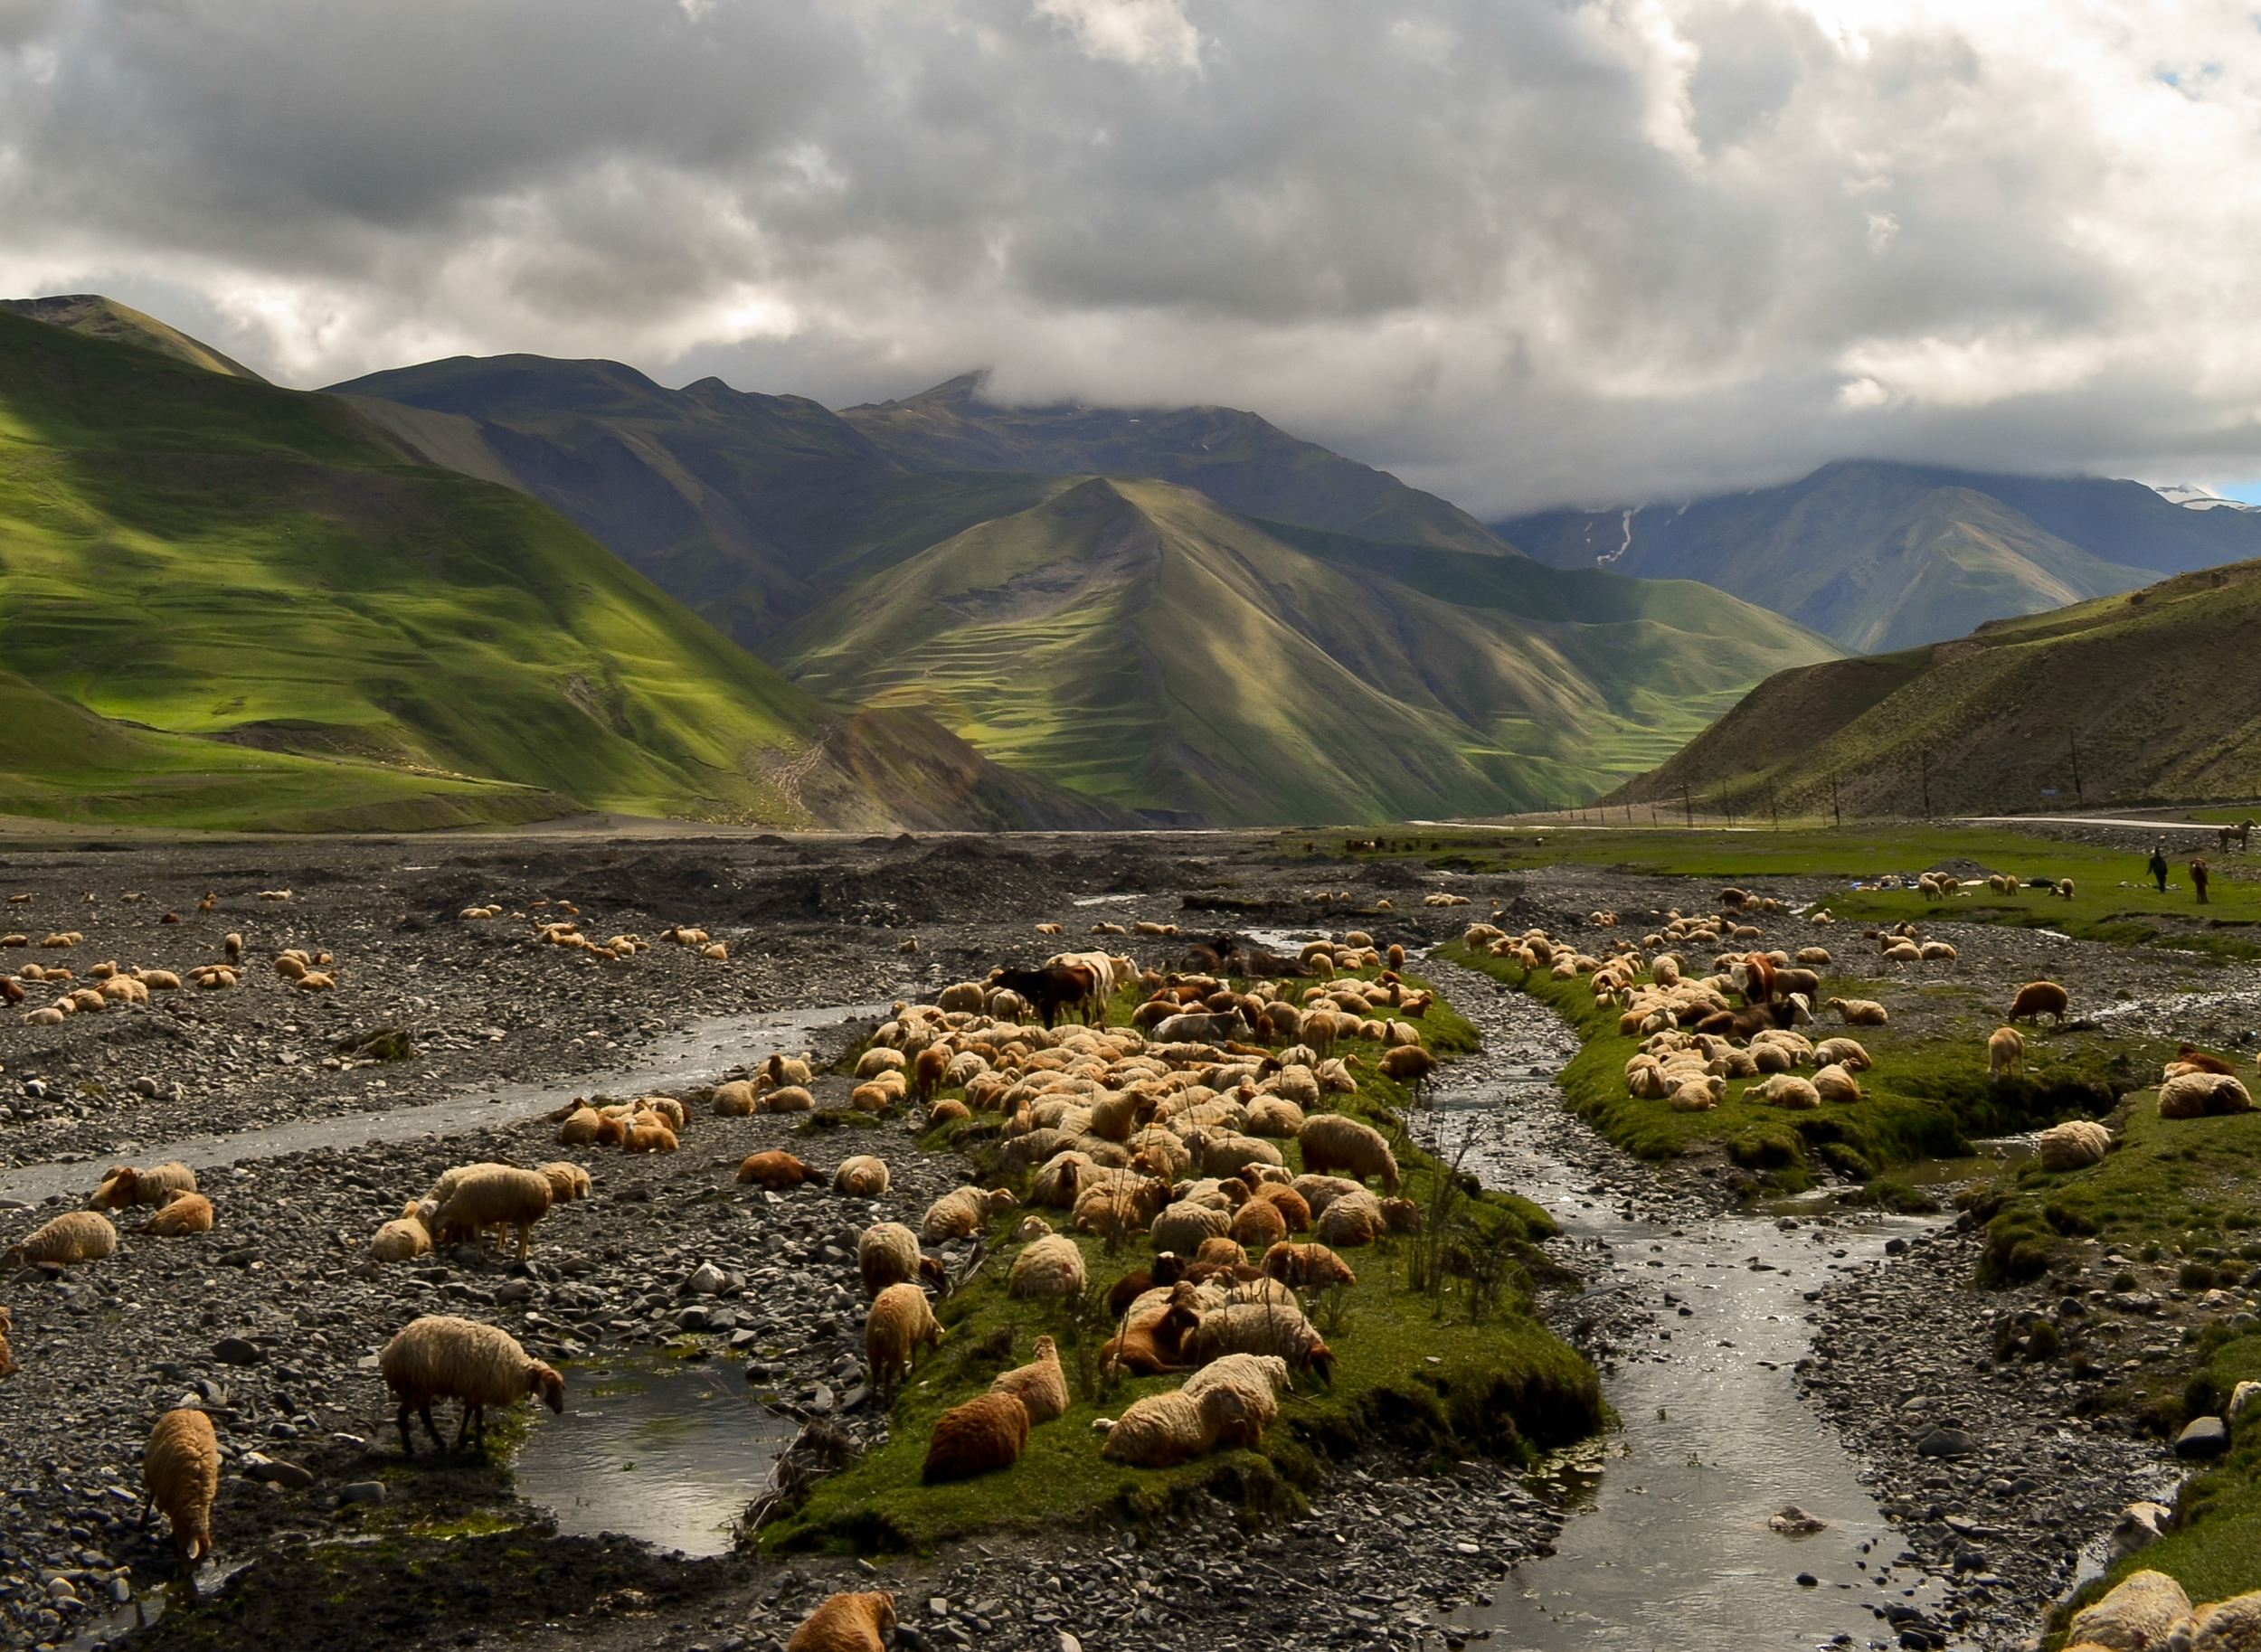 A flock of sheep on their way back to Xinaliq after a winter in the lowlands.